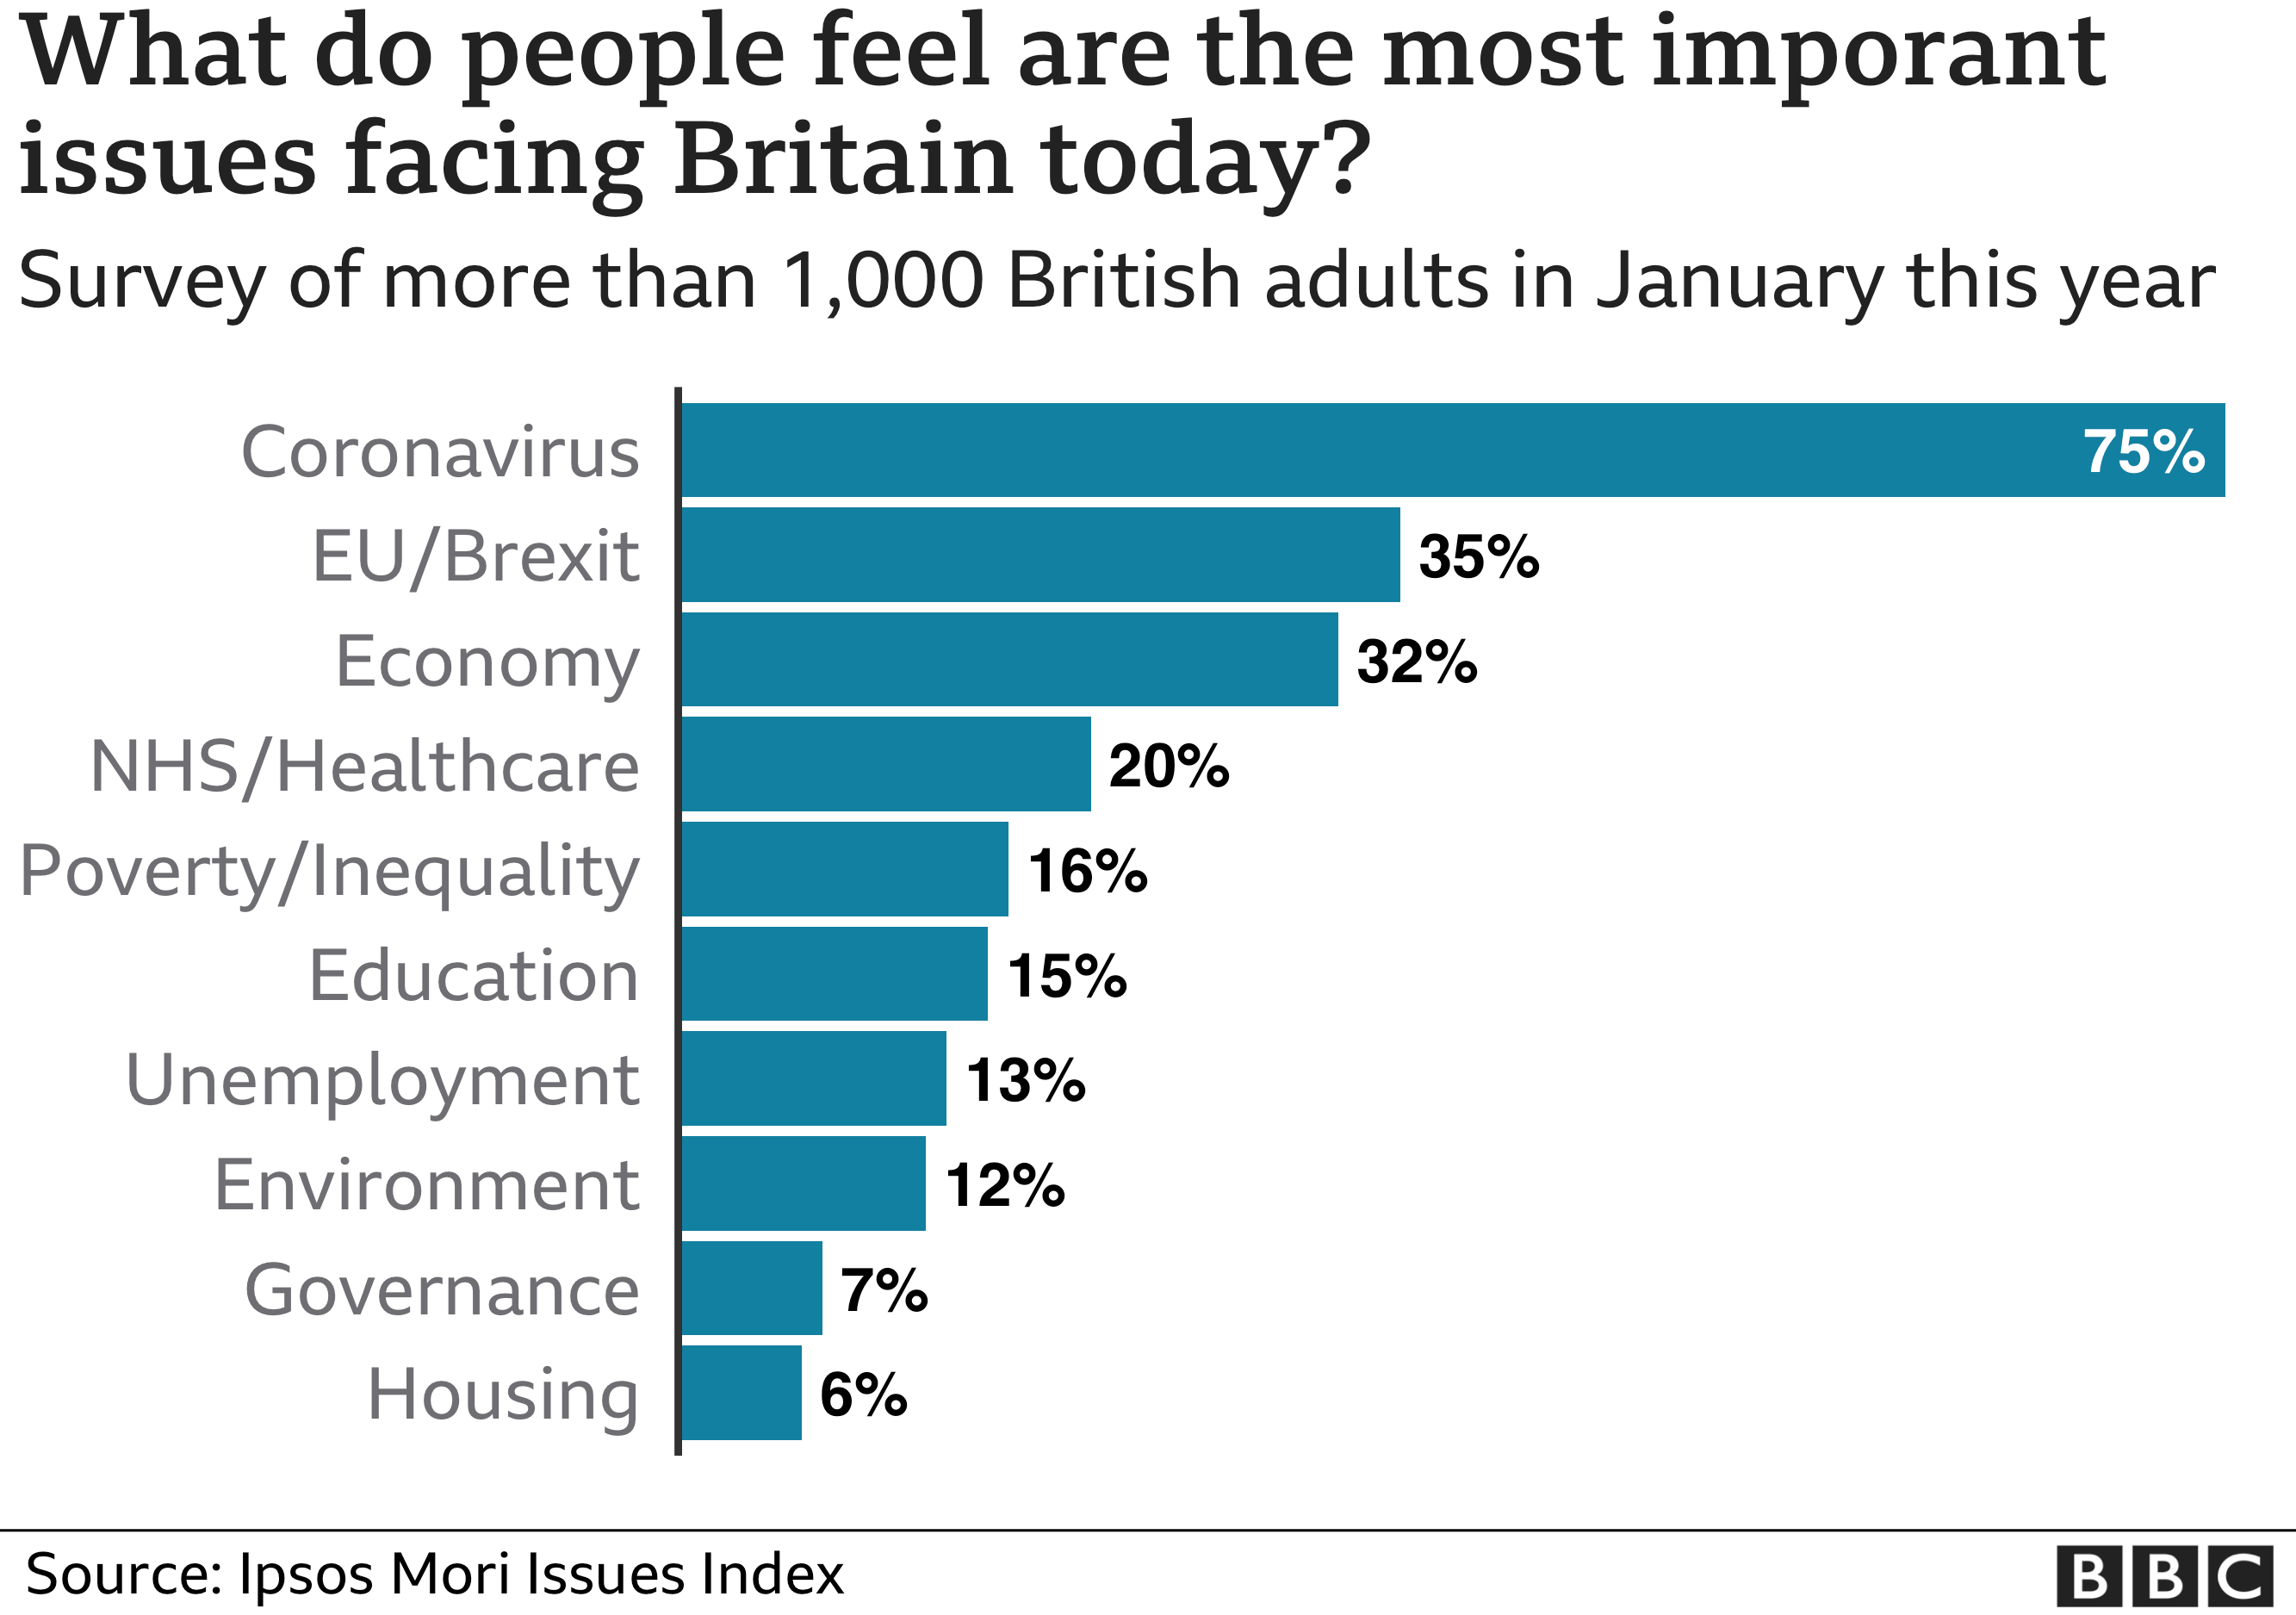 List of issues UK voters consider the most important. Coronavirus 75%, EU/Brexit 35%, Economy 32%, NHS 20%